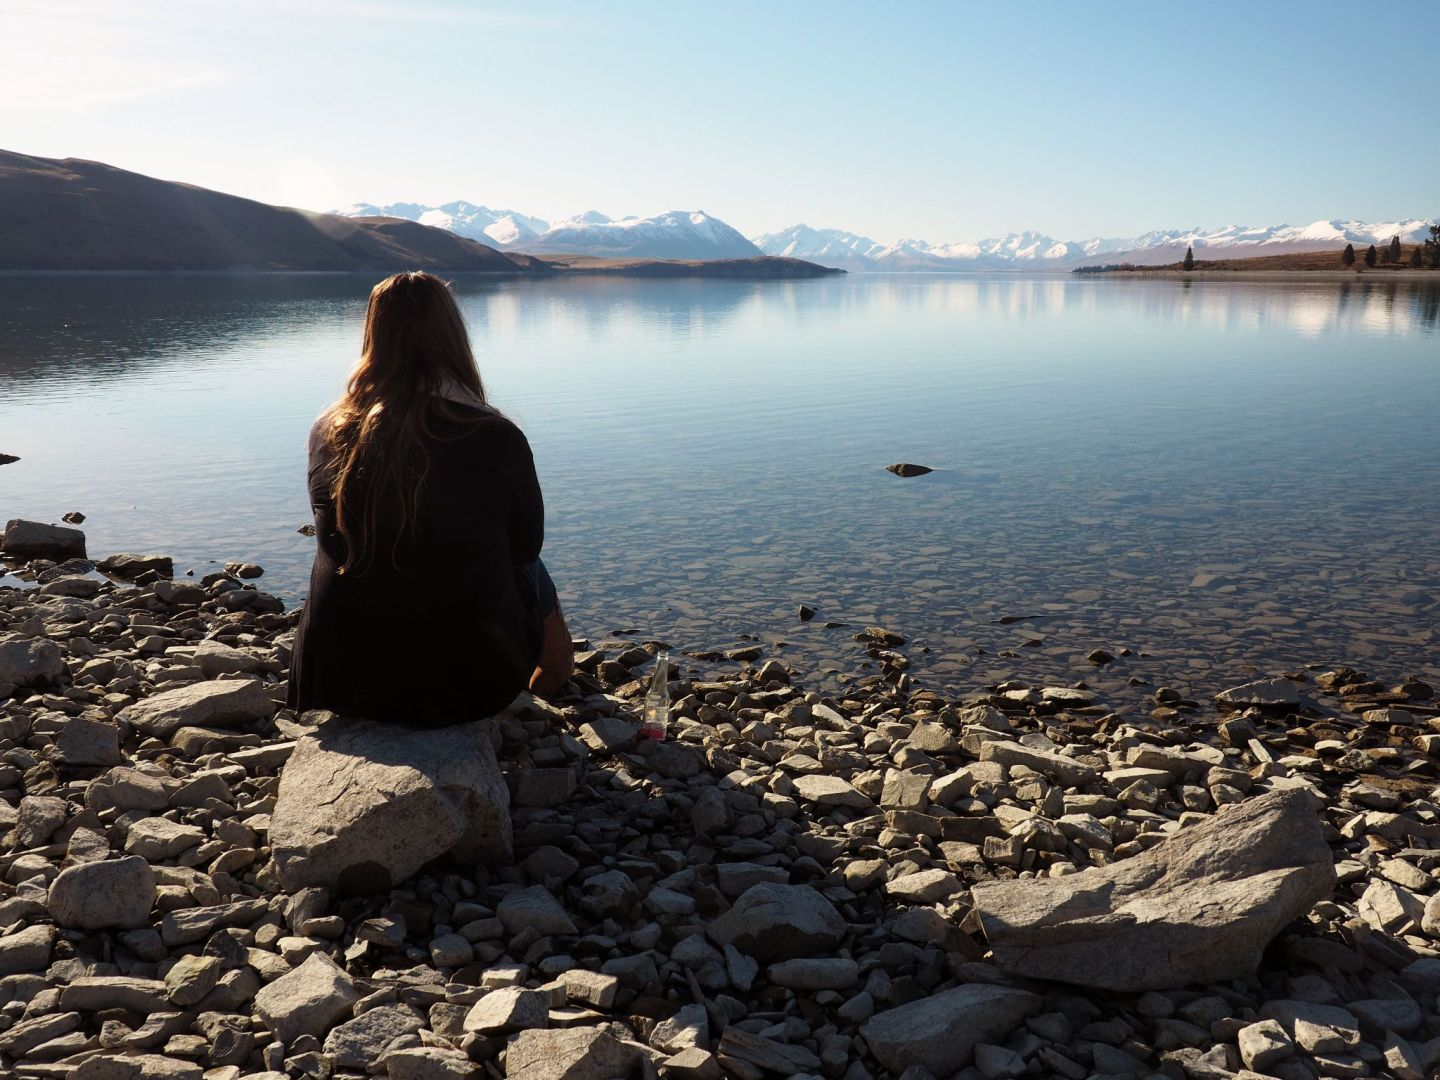 Simone sitting at Lake Tekapo